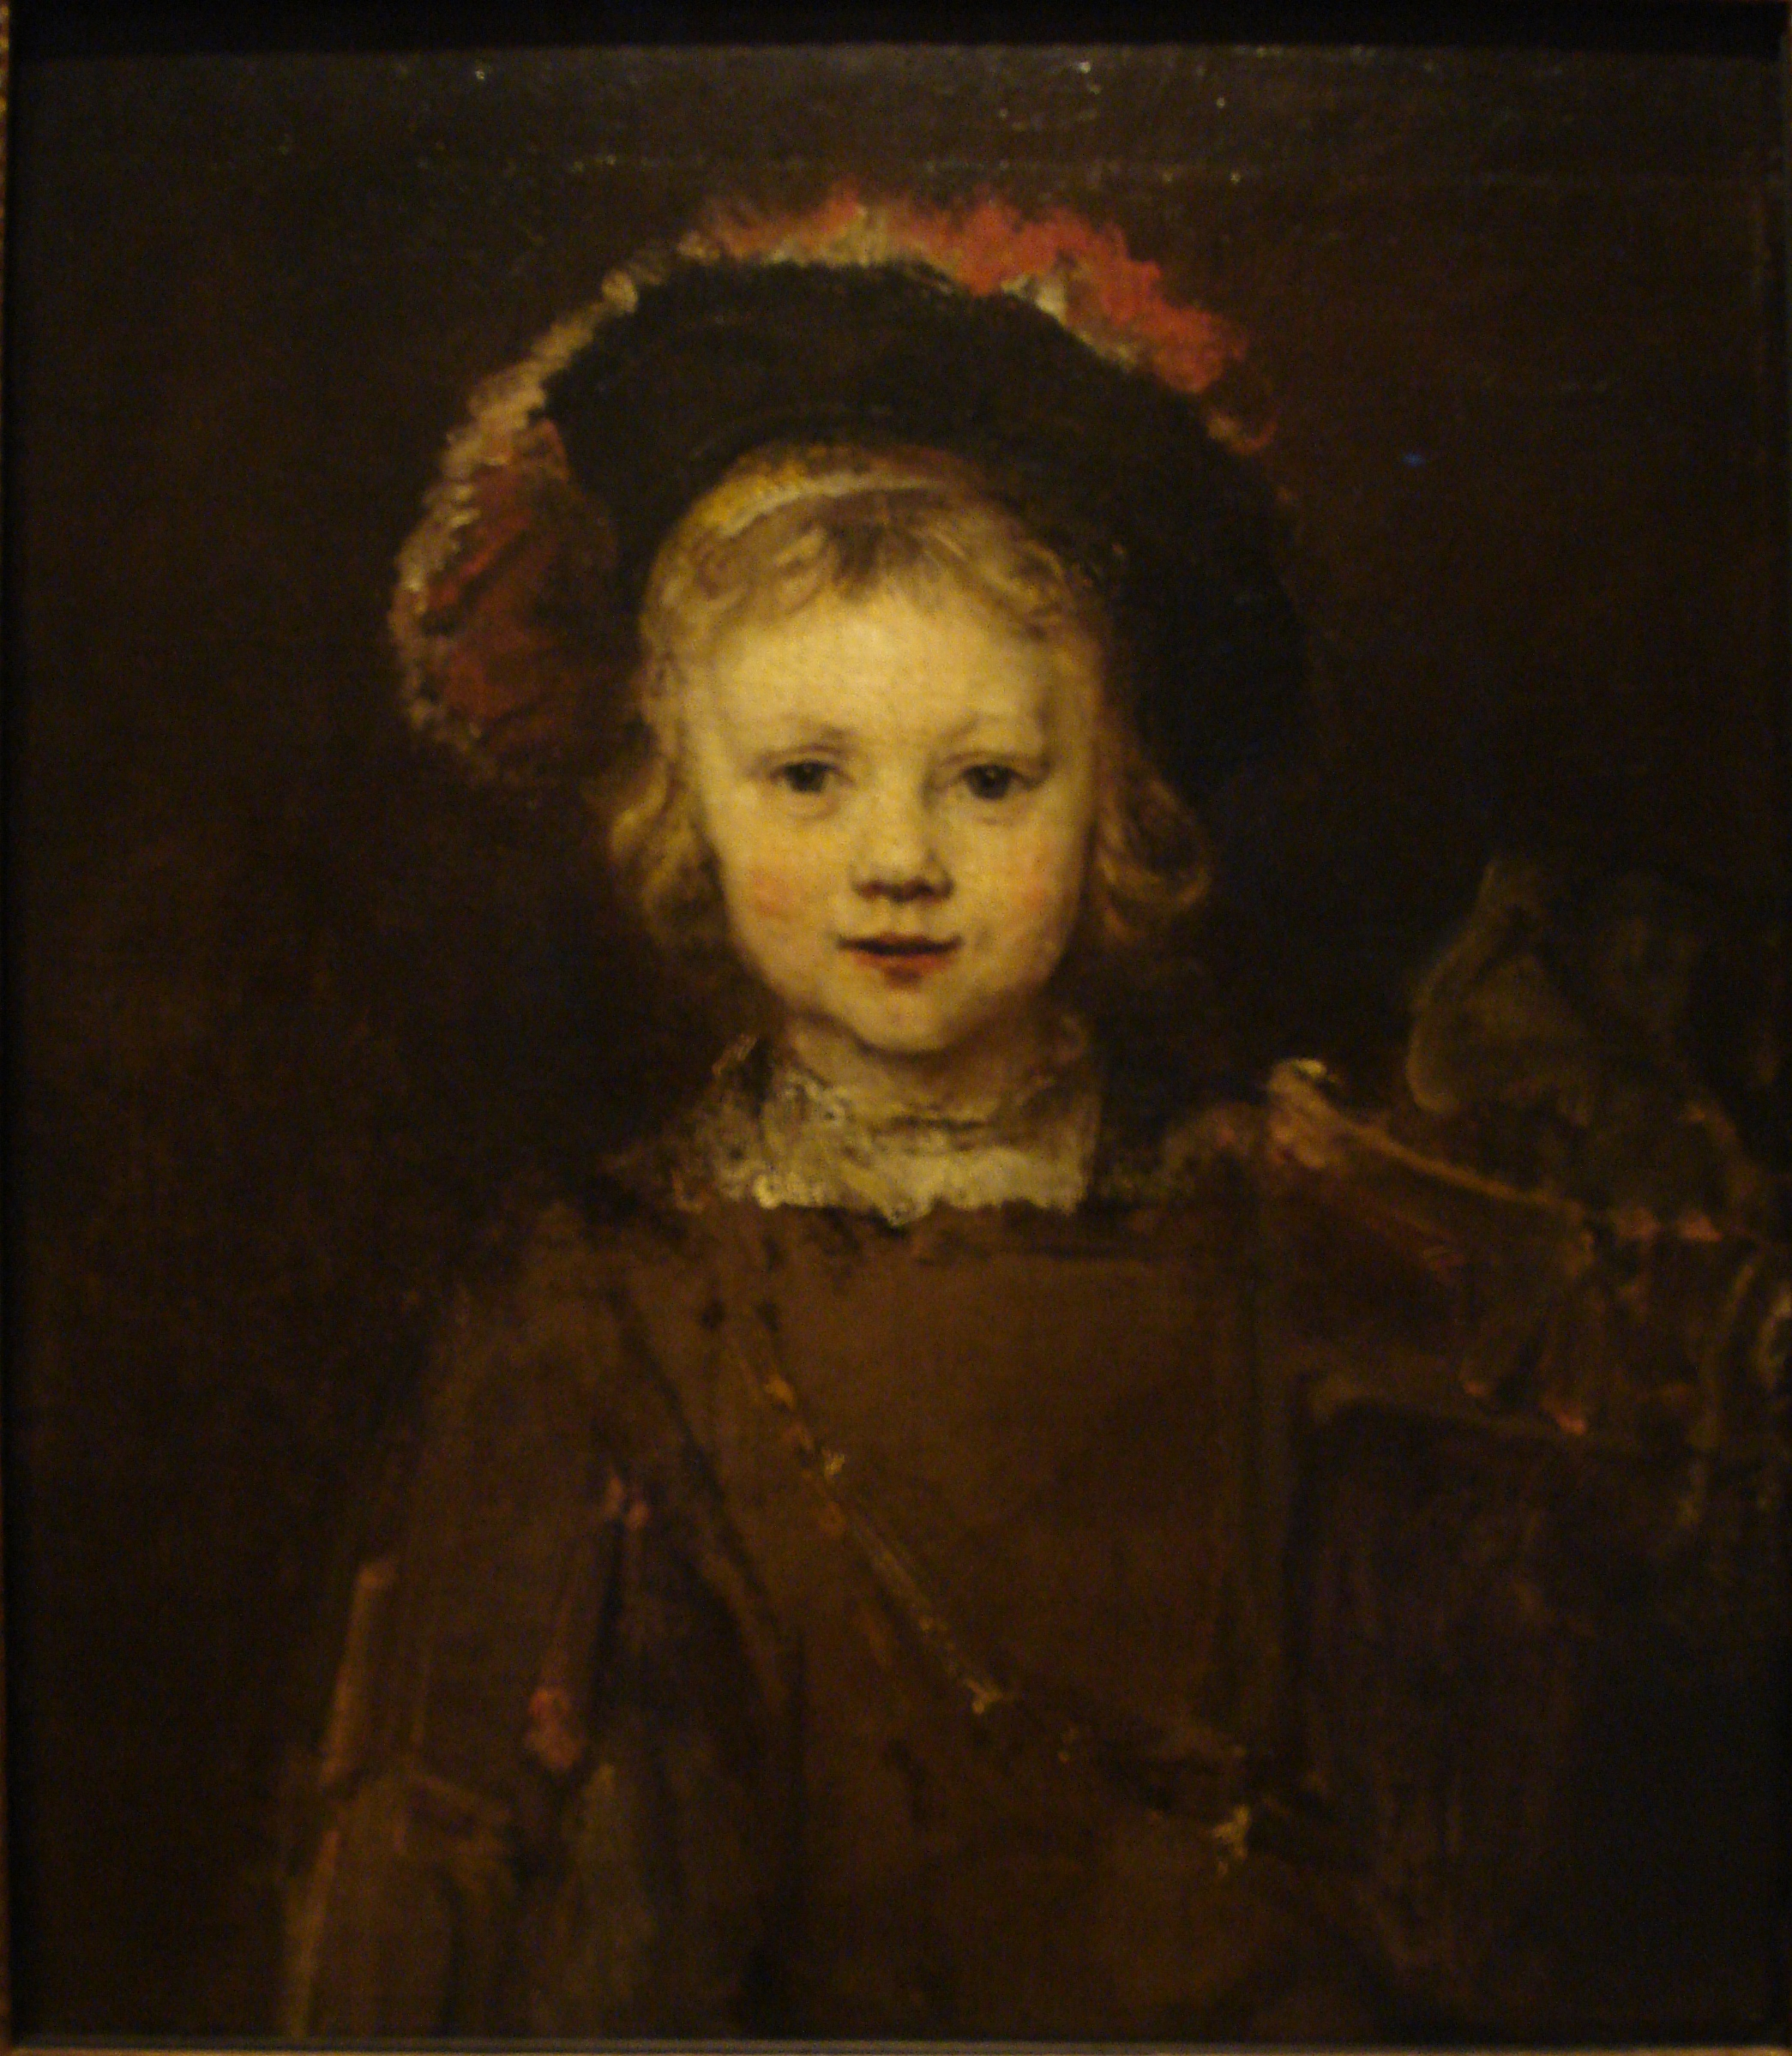 https://upload.wikimedia.org/wikipedia/commons/6/6d/Portrait_of_a_boy_by_Rembrandt.jpg